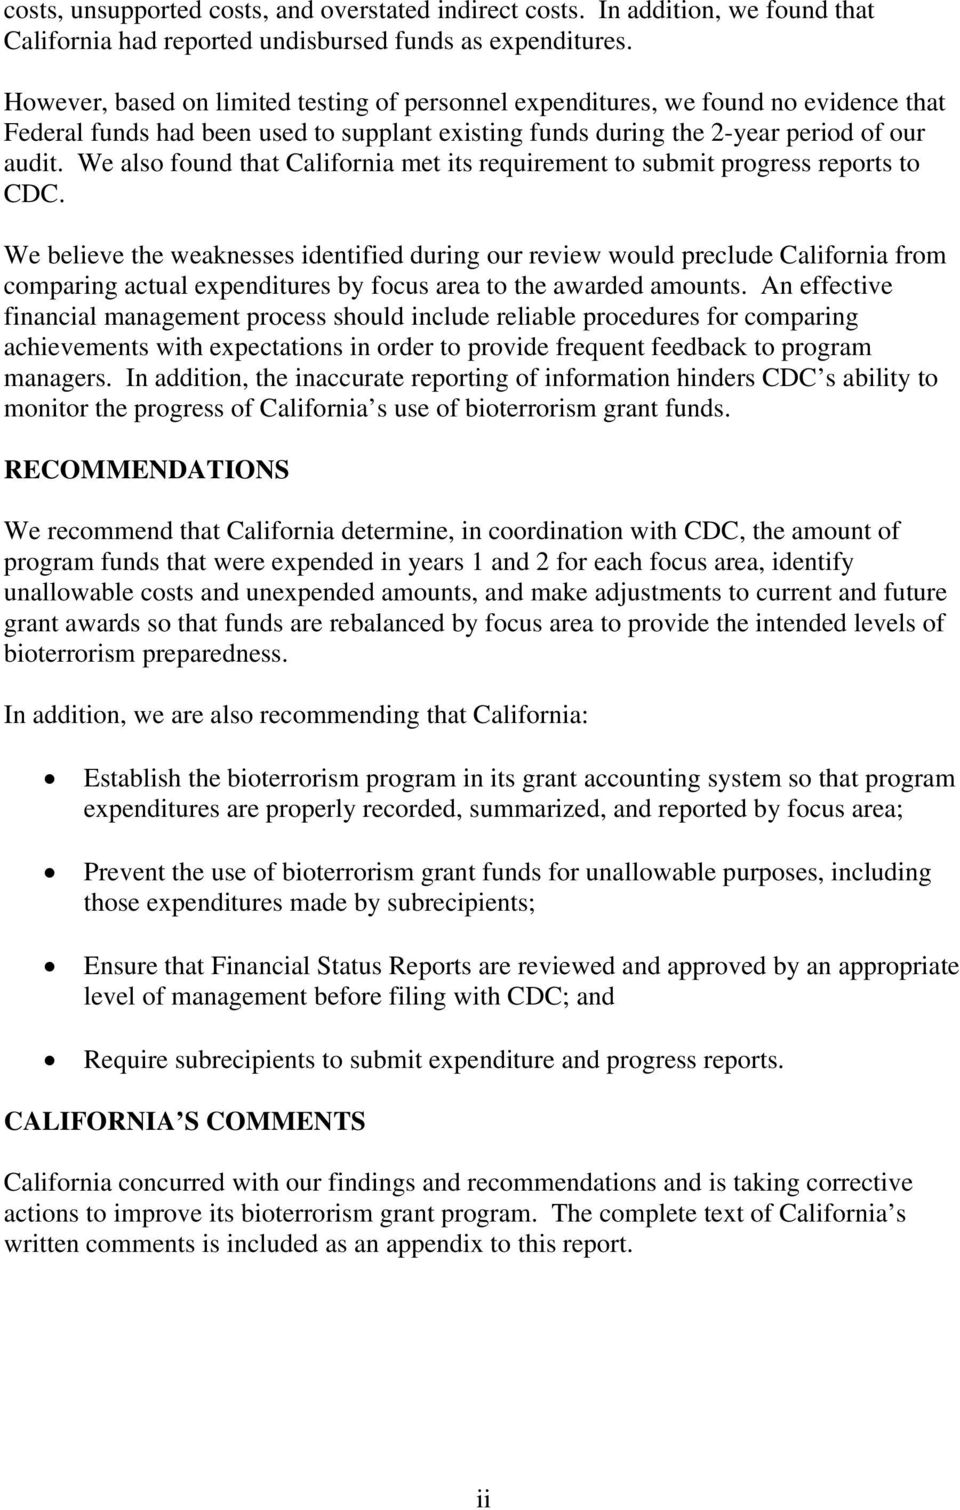 We also found that California met its requirement to submit progress reports to CDC.